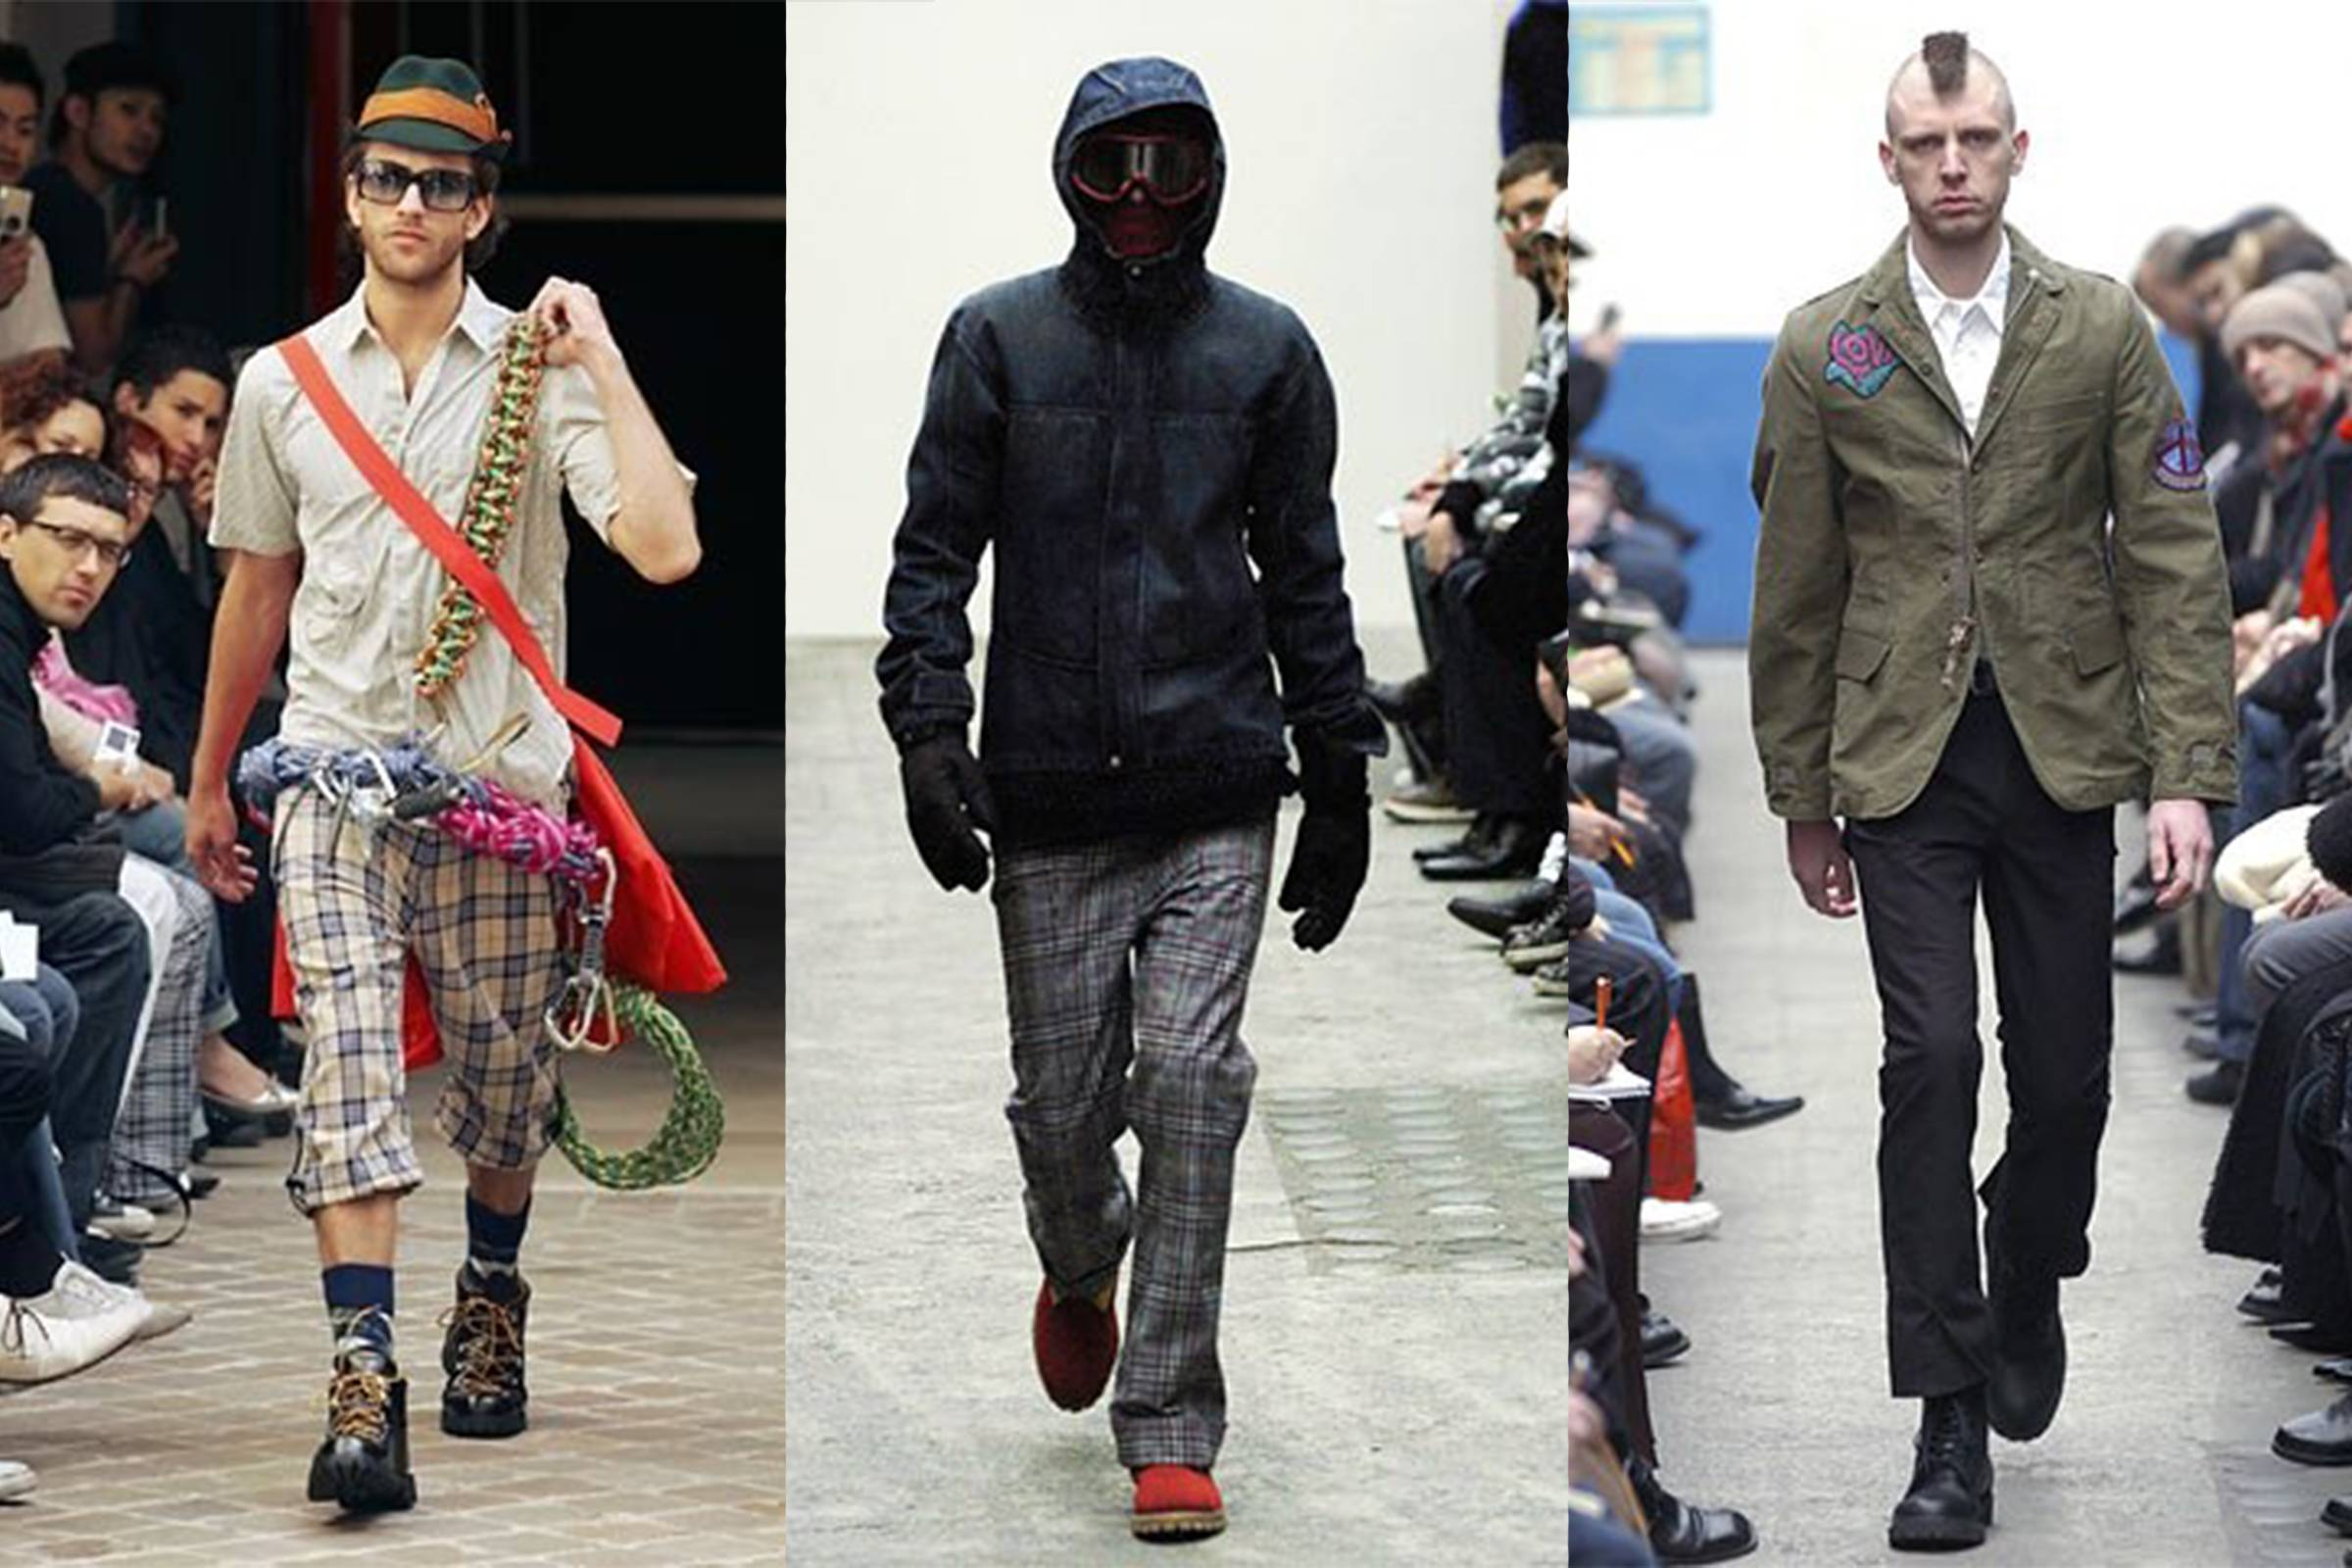 Junya Watanabe MAN, from left to right: Spring/Summer 2005, Fall/Winter 2005, Fall/Winter 2006